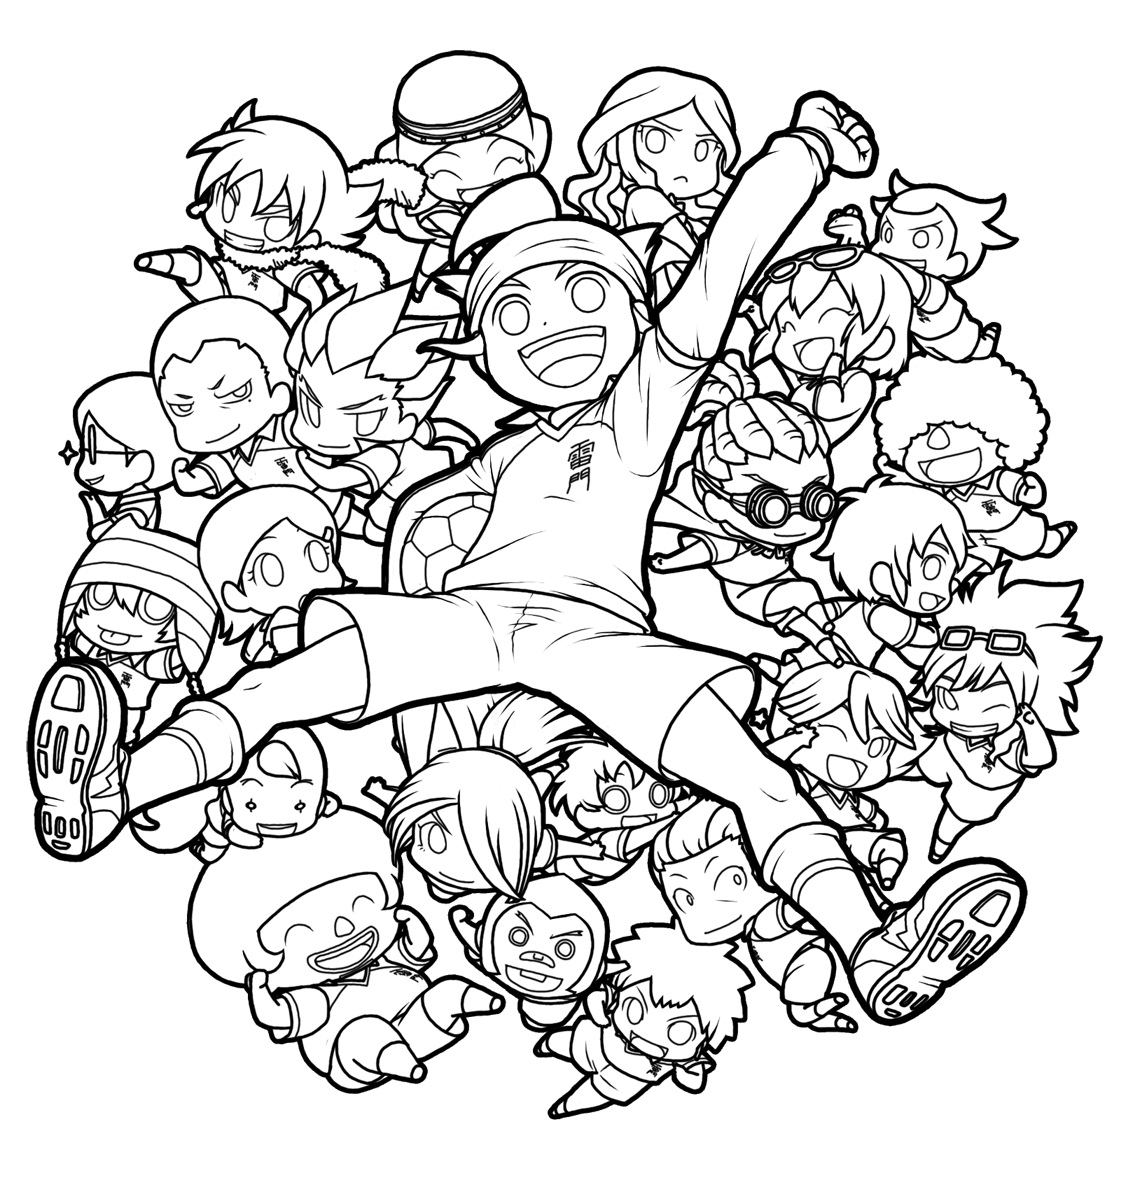 Inazuma eleven colouring pages page 2 -  Colouring Pages Page 3 Coloriage Coloriage Kazuya Page 2